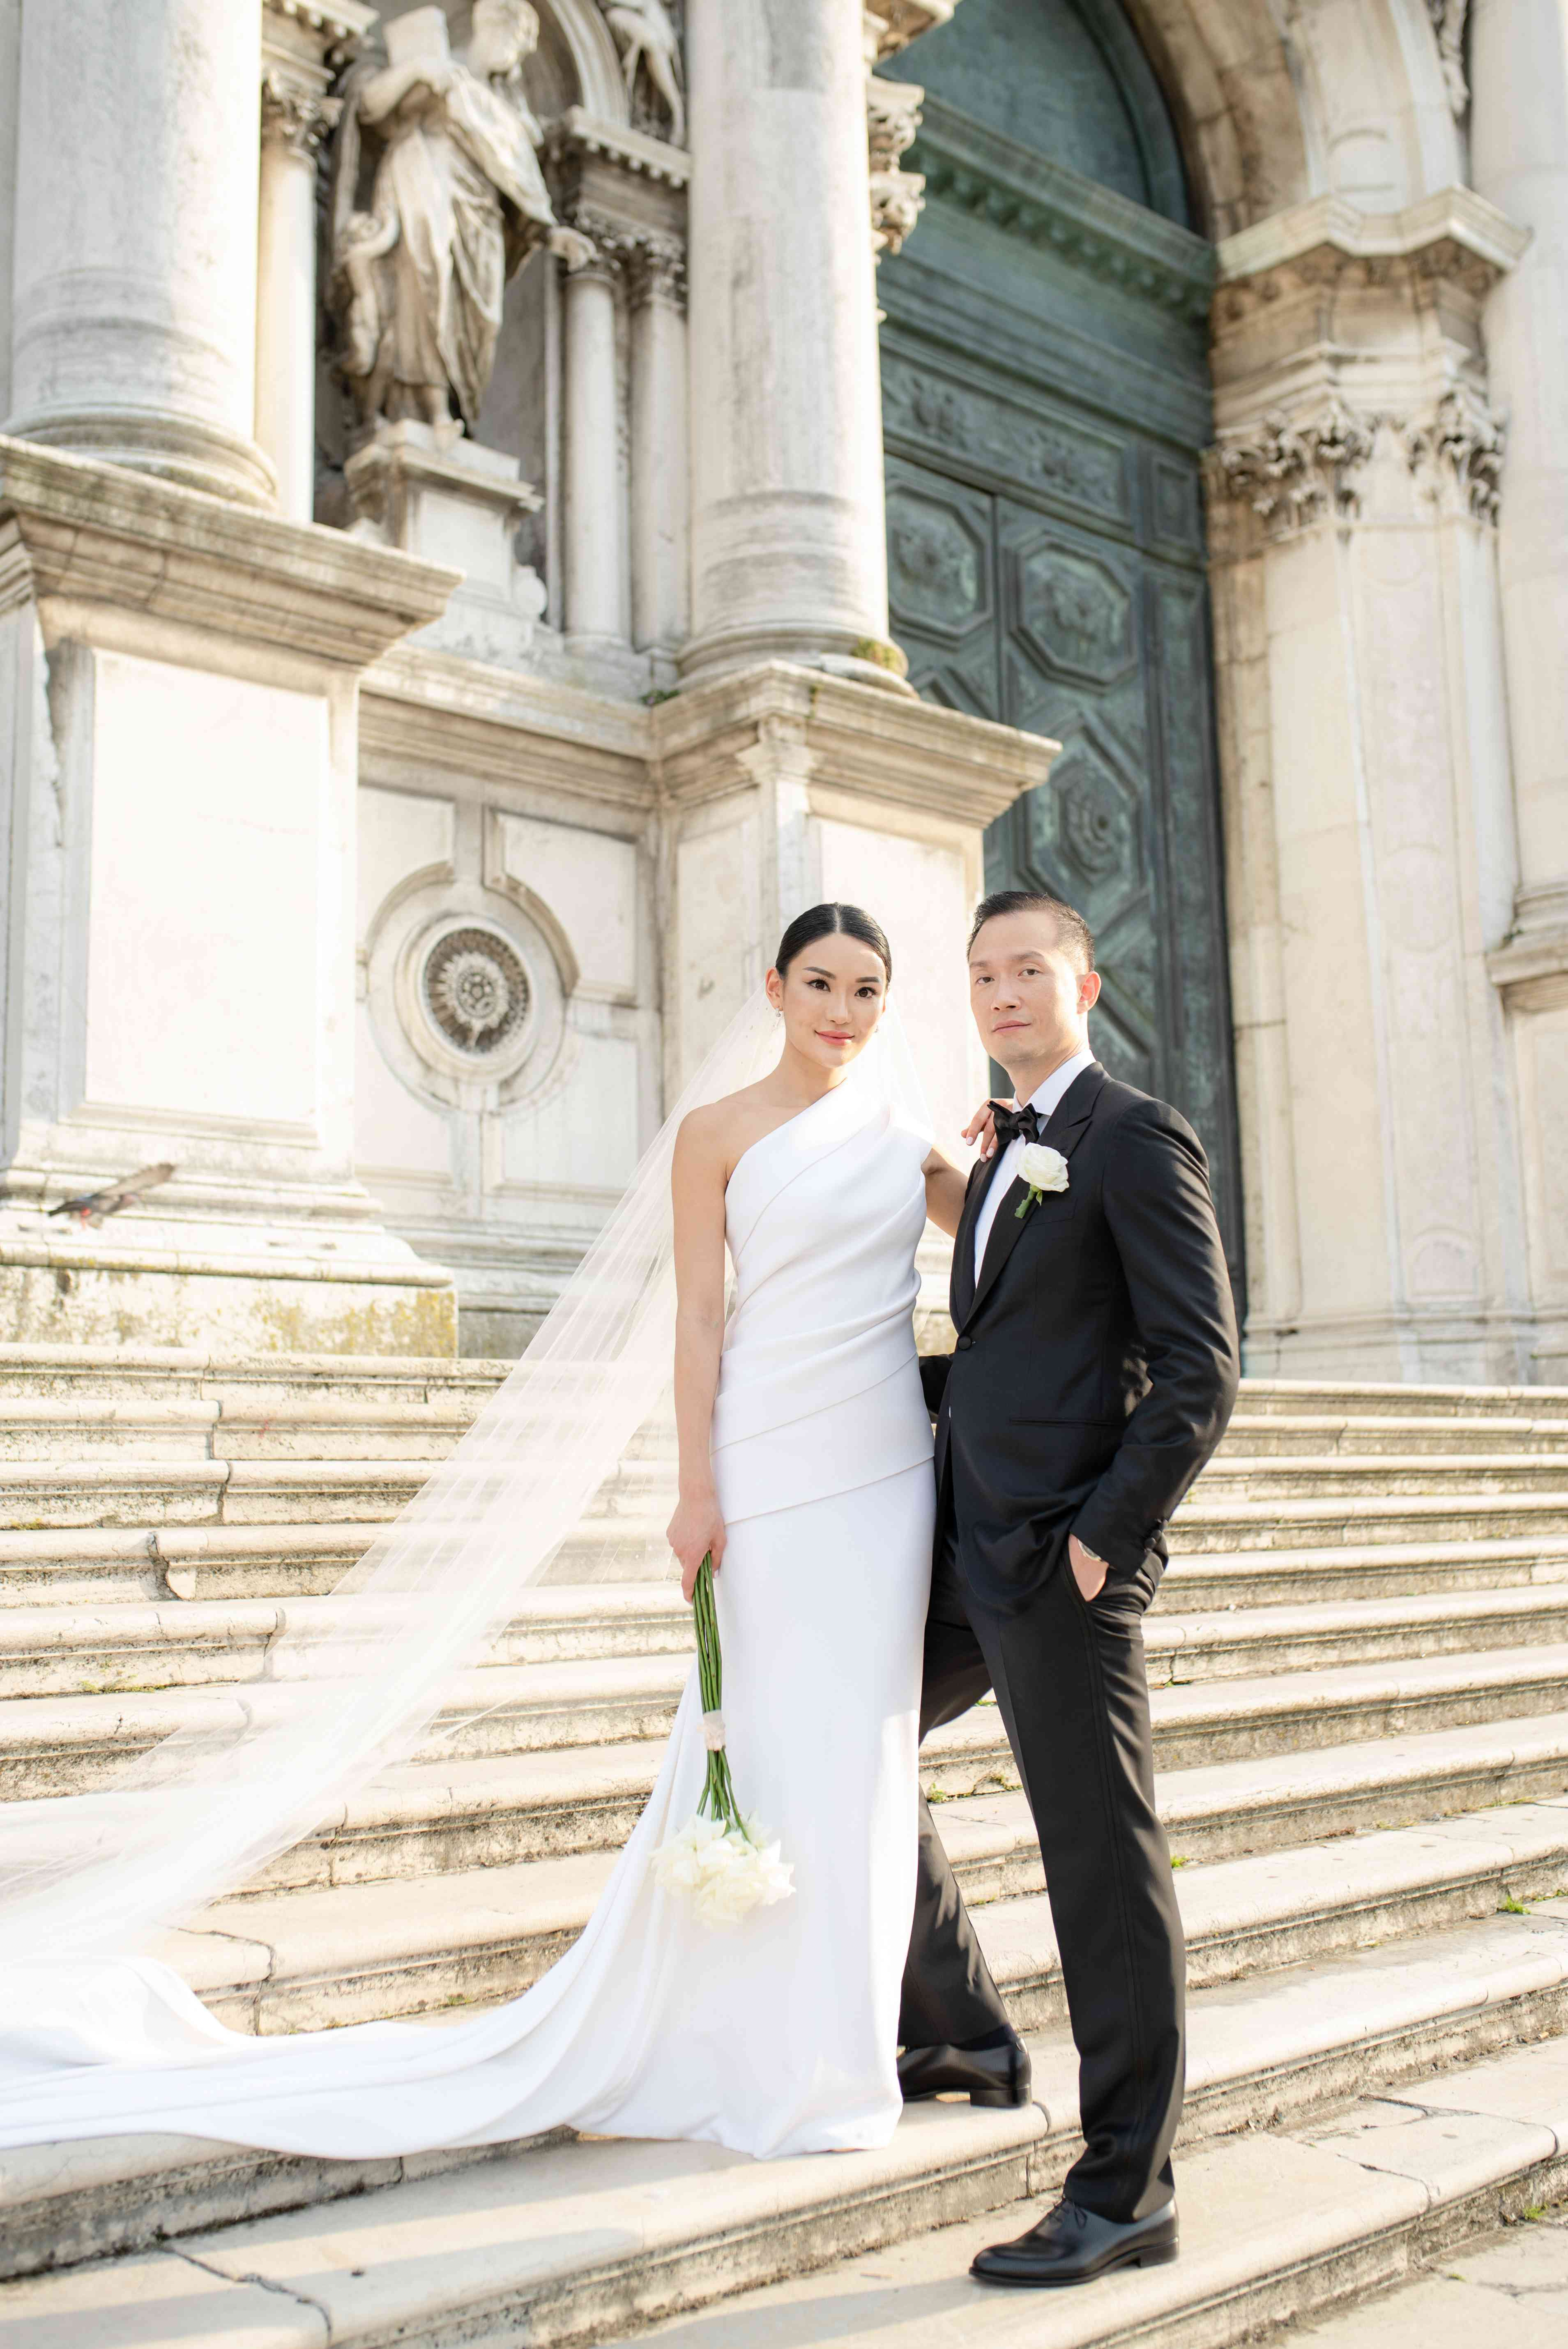 A Sophisticated Modern Wedding In Historic Venice